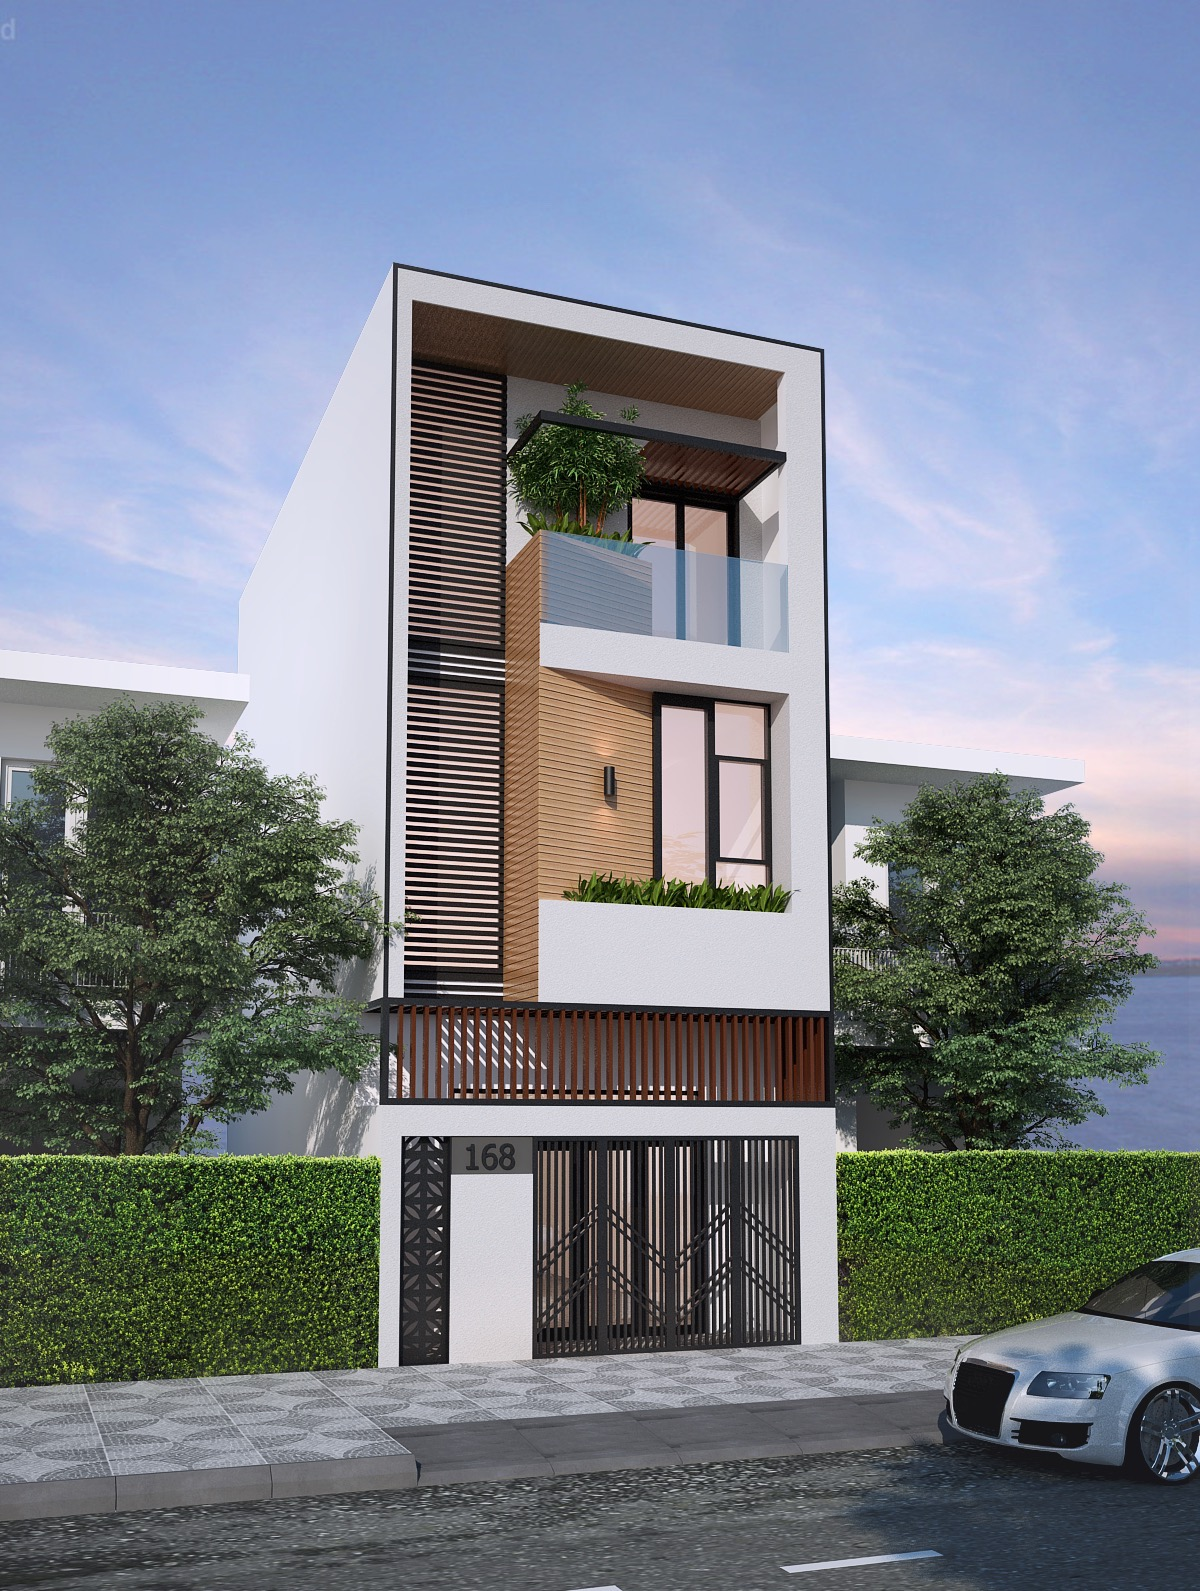 Exterior House Designs Exterior Modern With Concrete Patio Flat Roof: 50 Narrow Lot Houses That Transform A Skinny Exterior Into Something Special